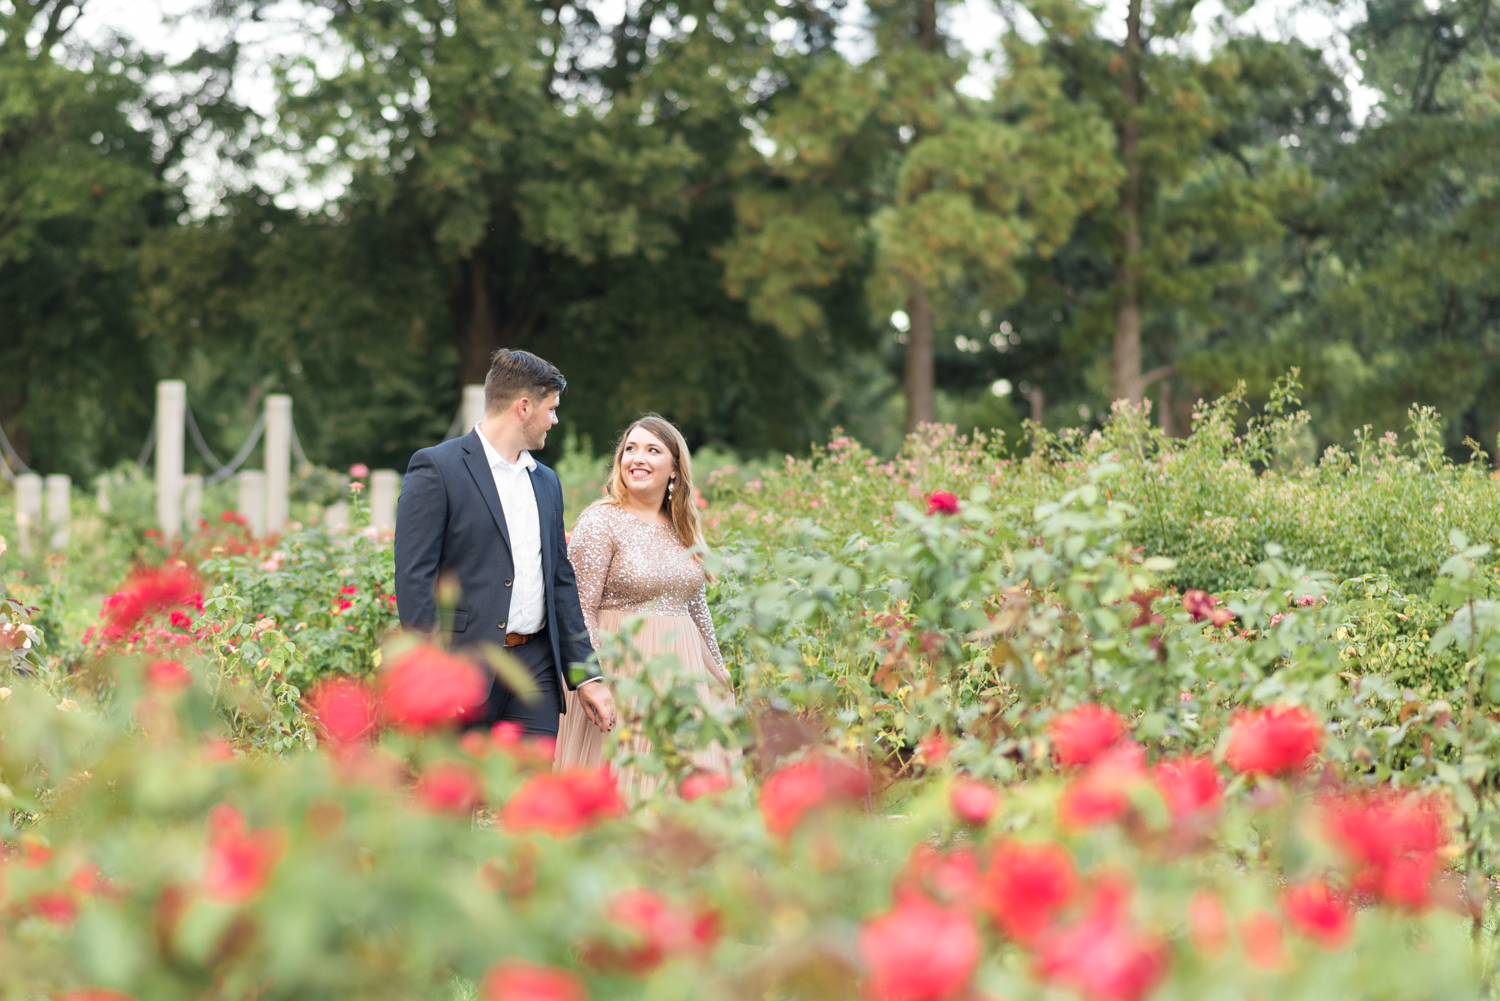 Formal Engagement Session at Norfolk Botanical Garden-101.jpg